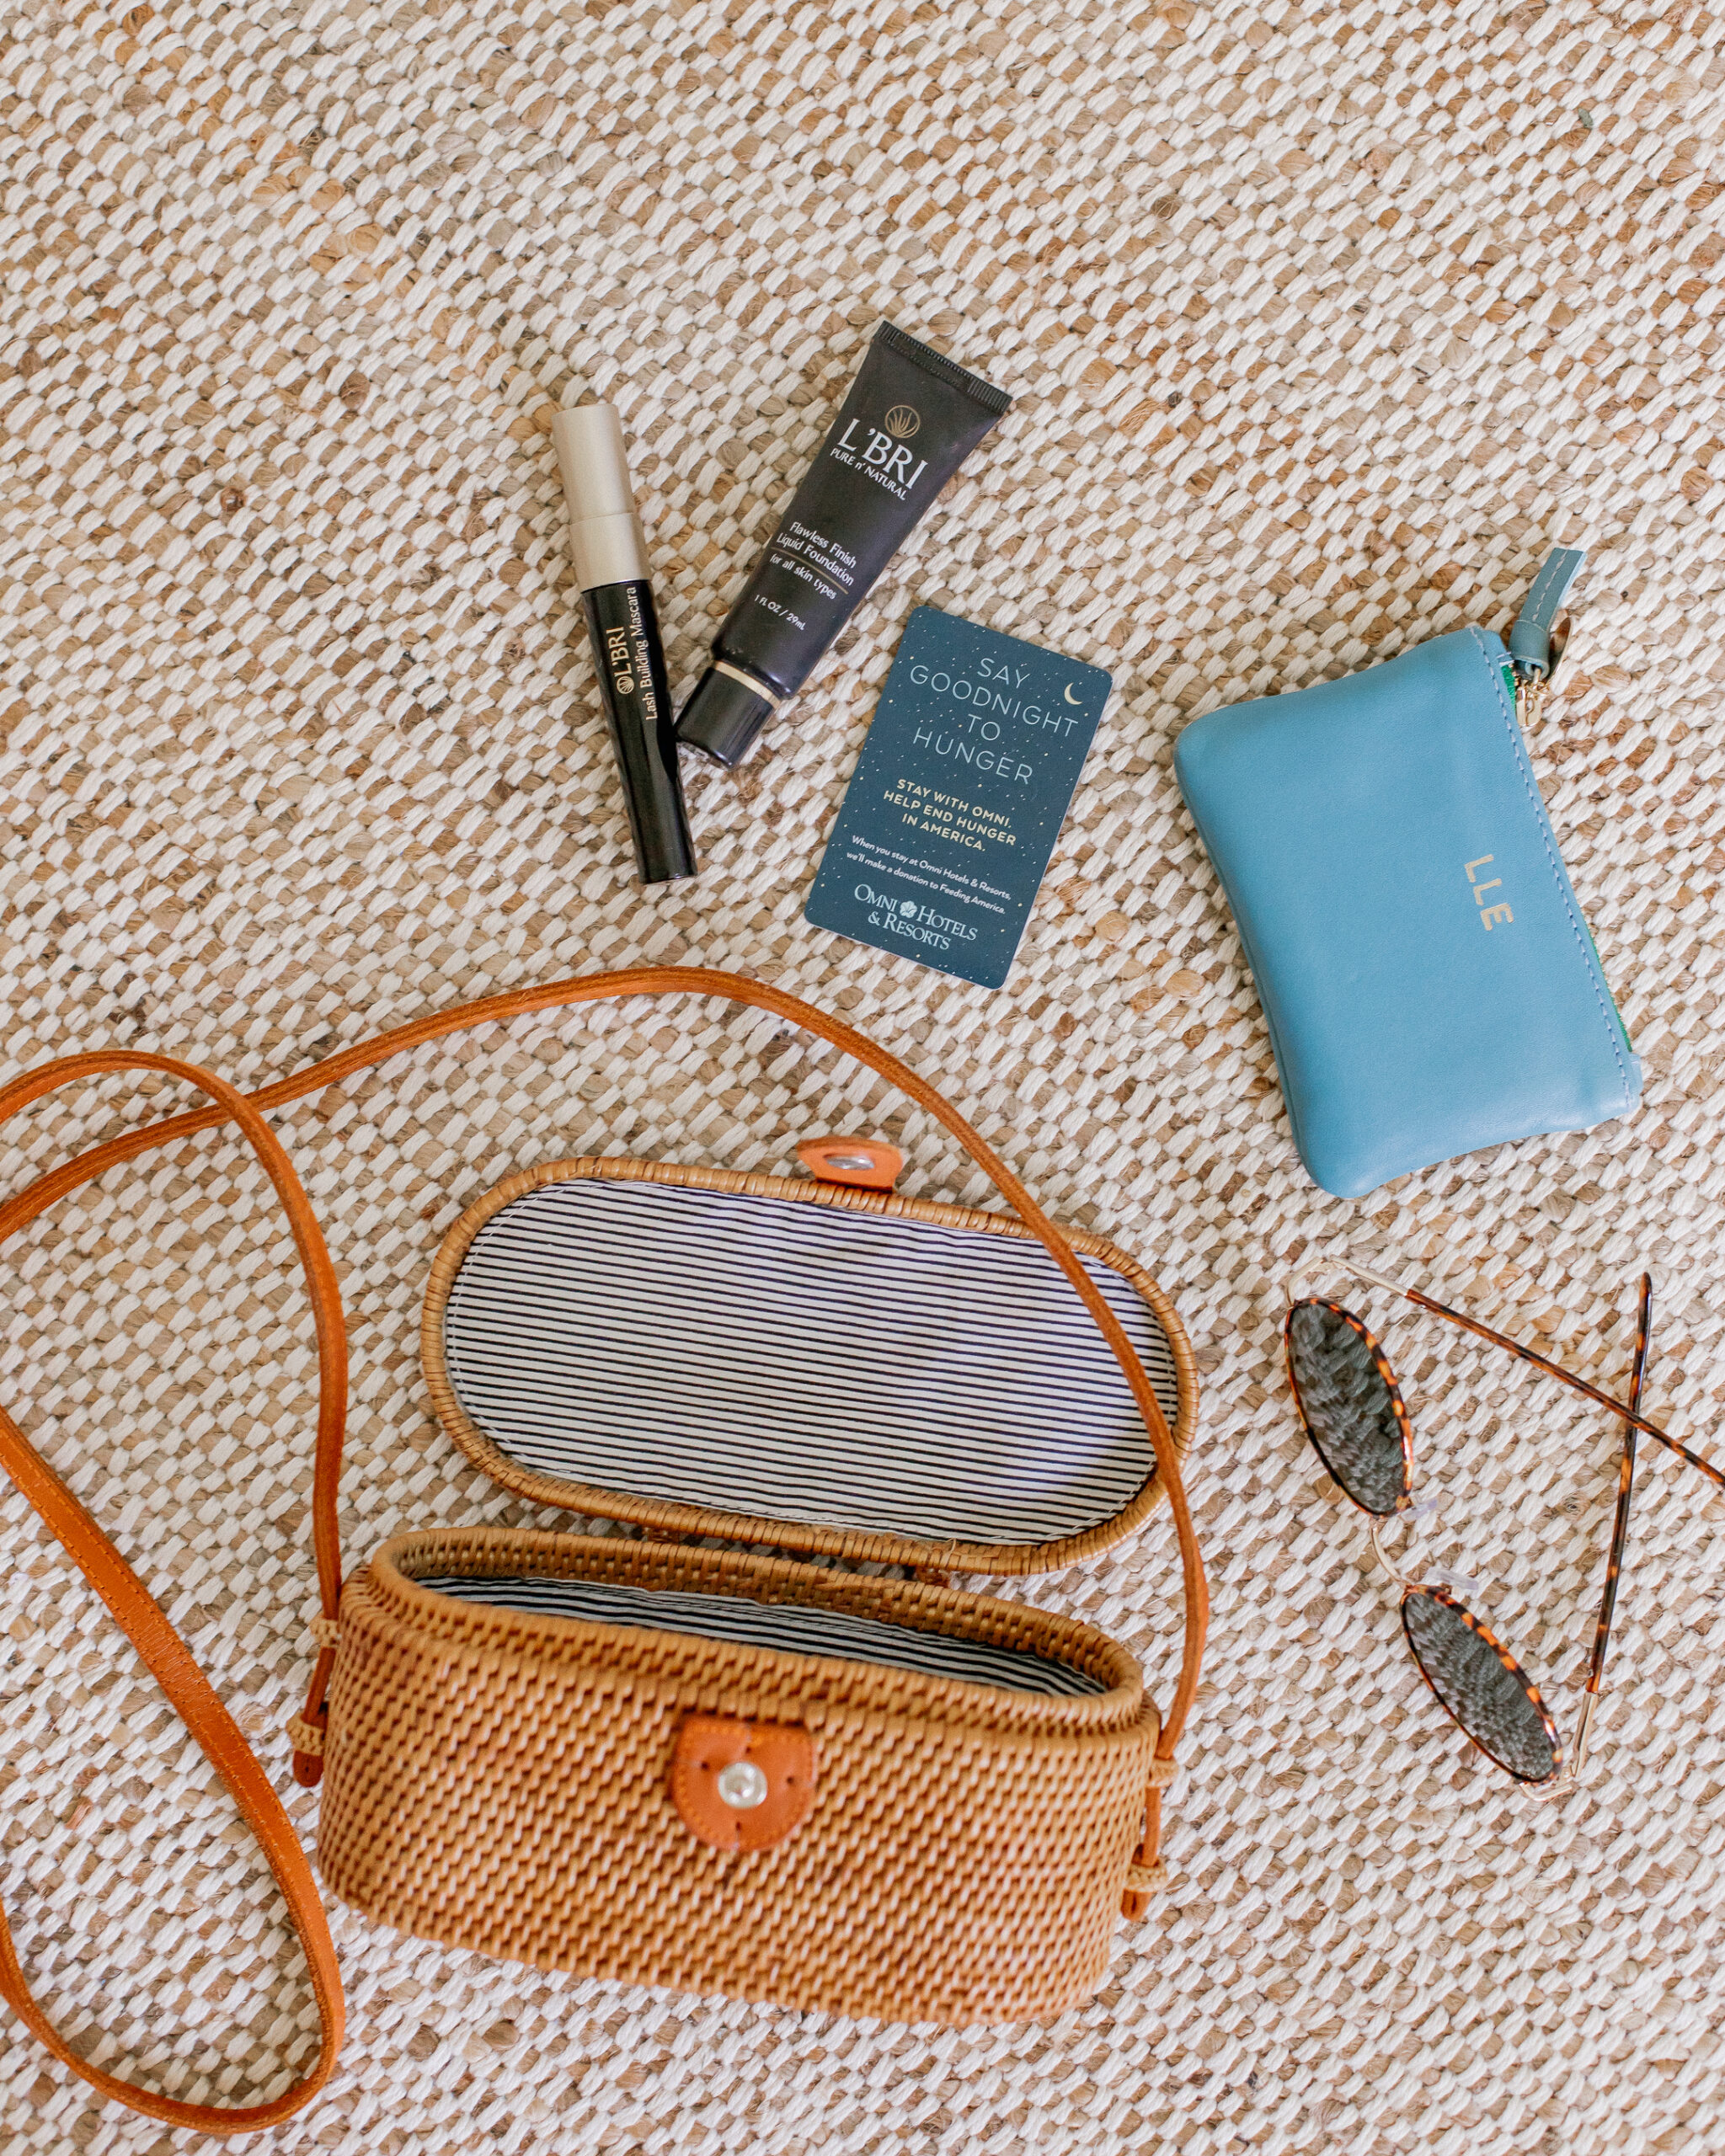 The Best Woven Bags for Summer 2020 | Louella Reese